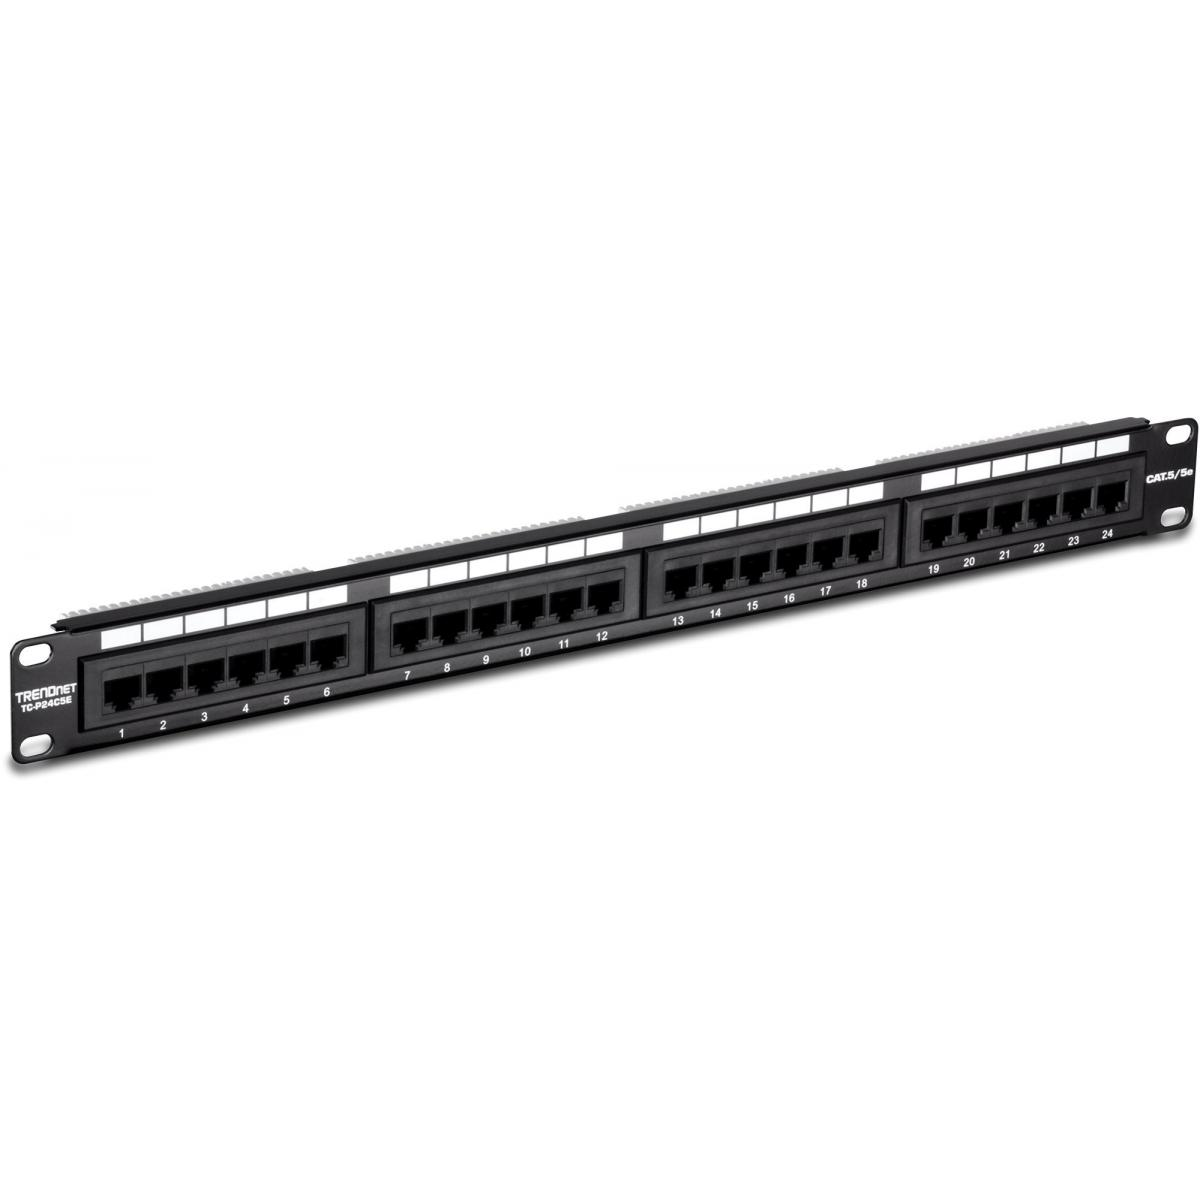 Trendnet Patch Panel Tc P24c5e Cat5 Smart Systems 568b Wiring